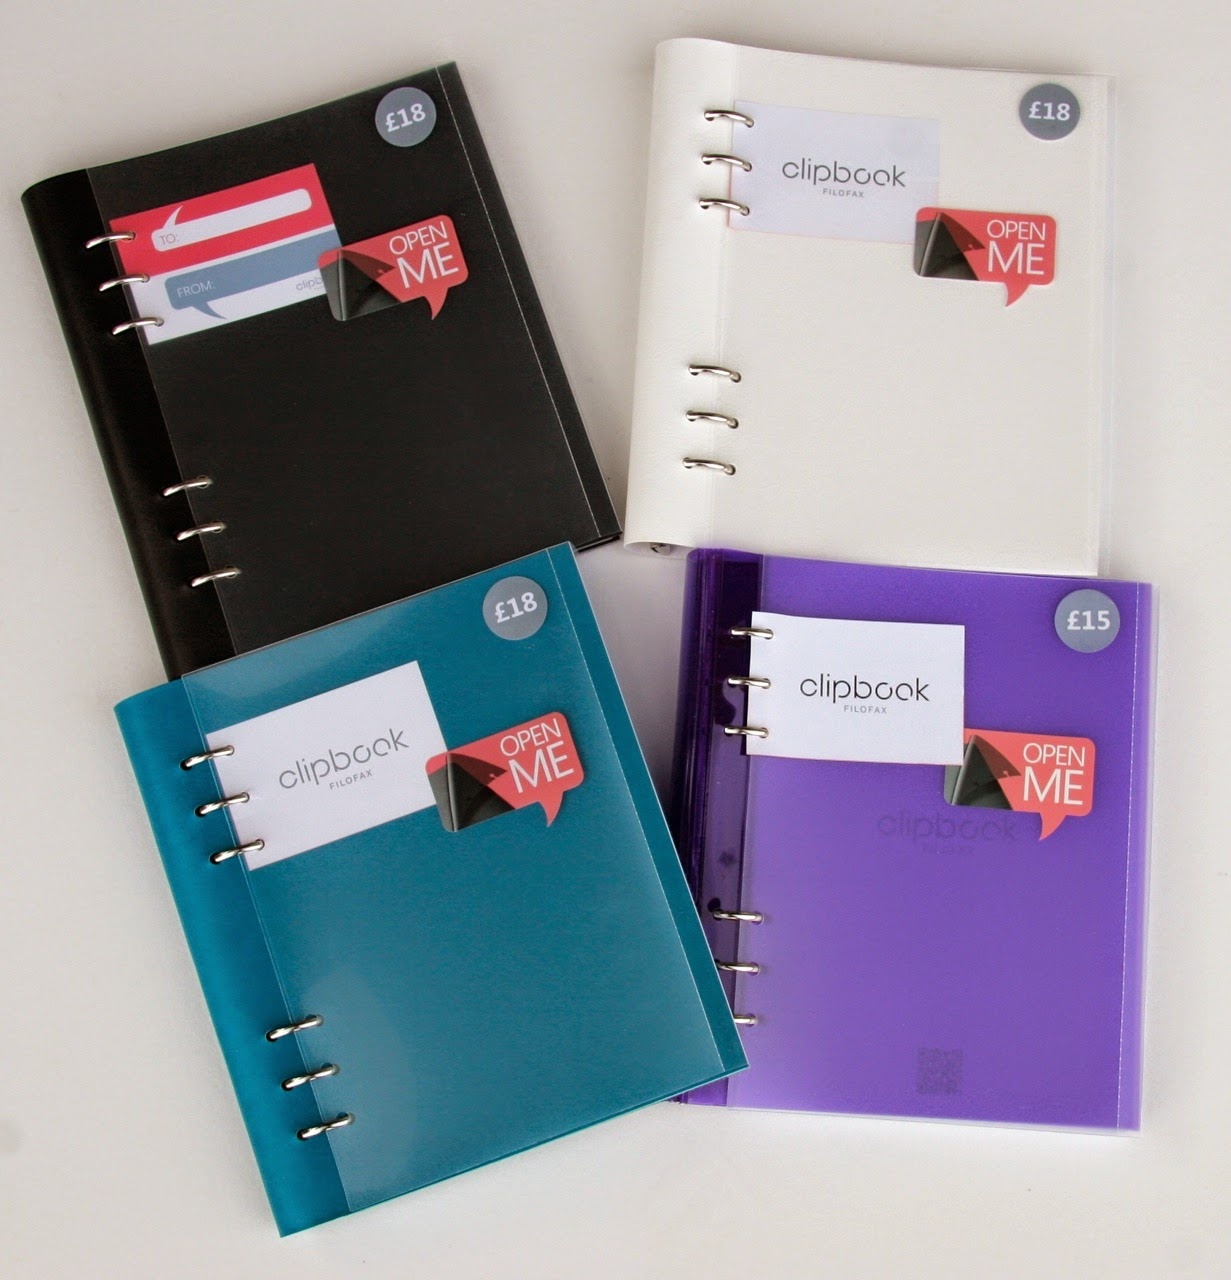 I think Filofax have aimed this product at people that might not already be Filofax owners/users.